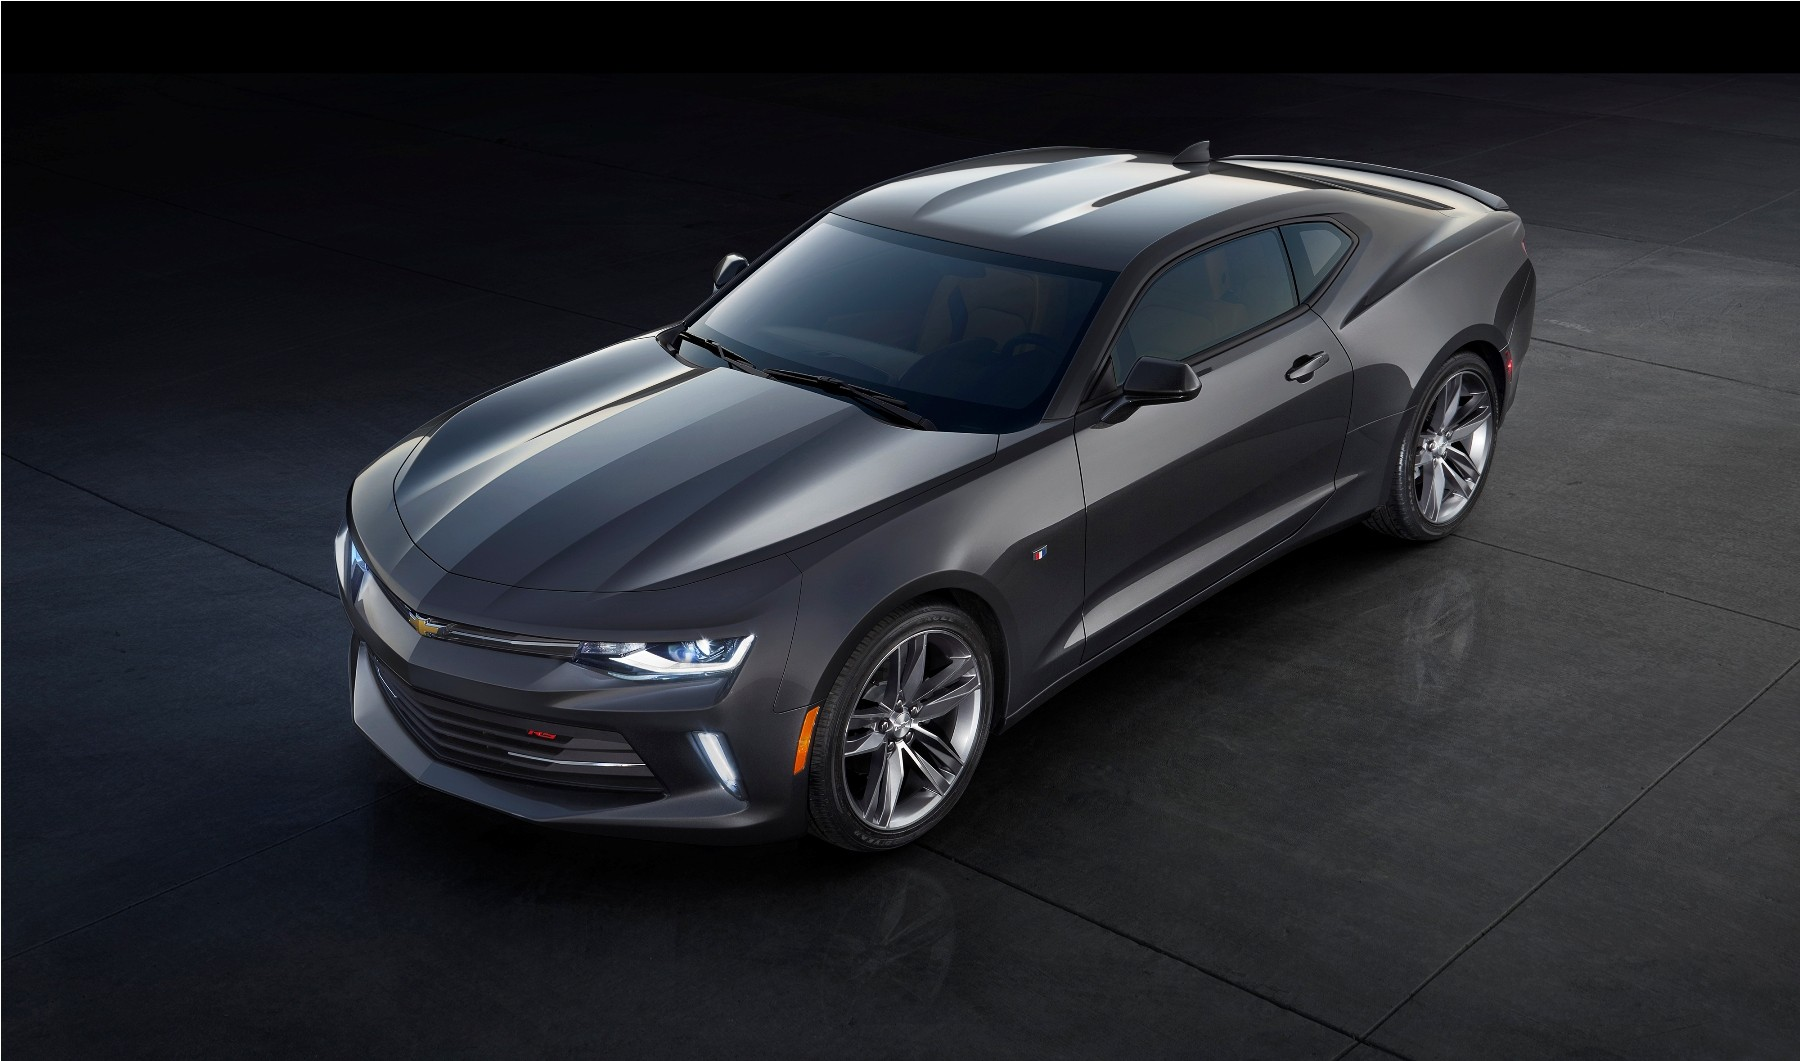 2016 Chevrolet Camaro Pilot Production Begins In Lansing